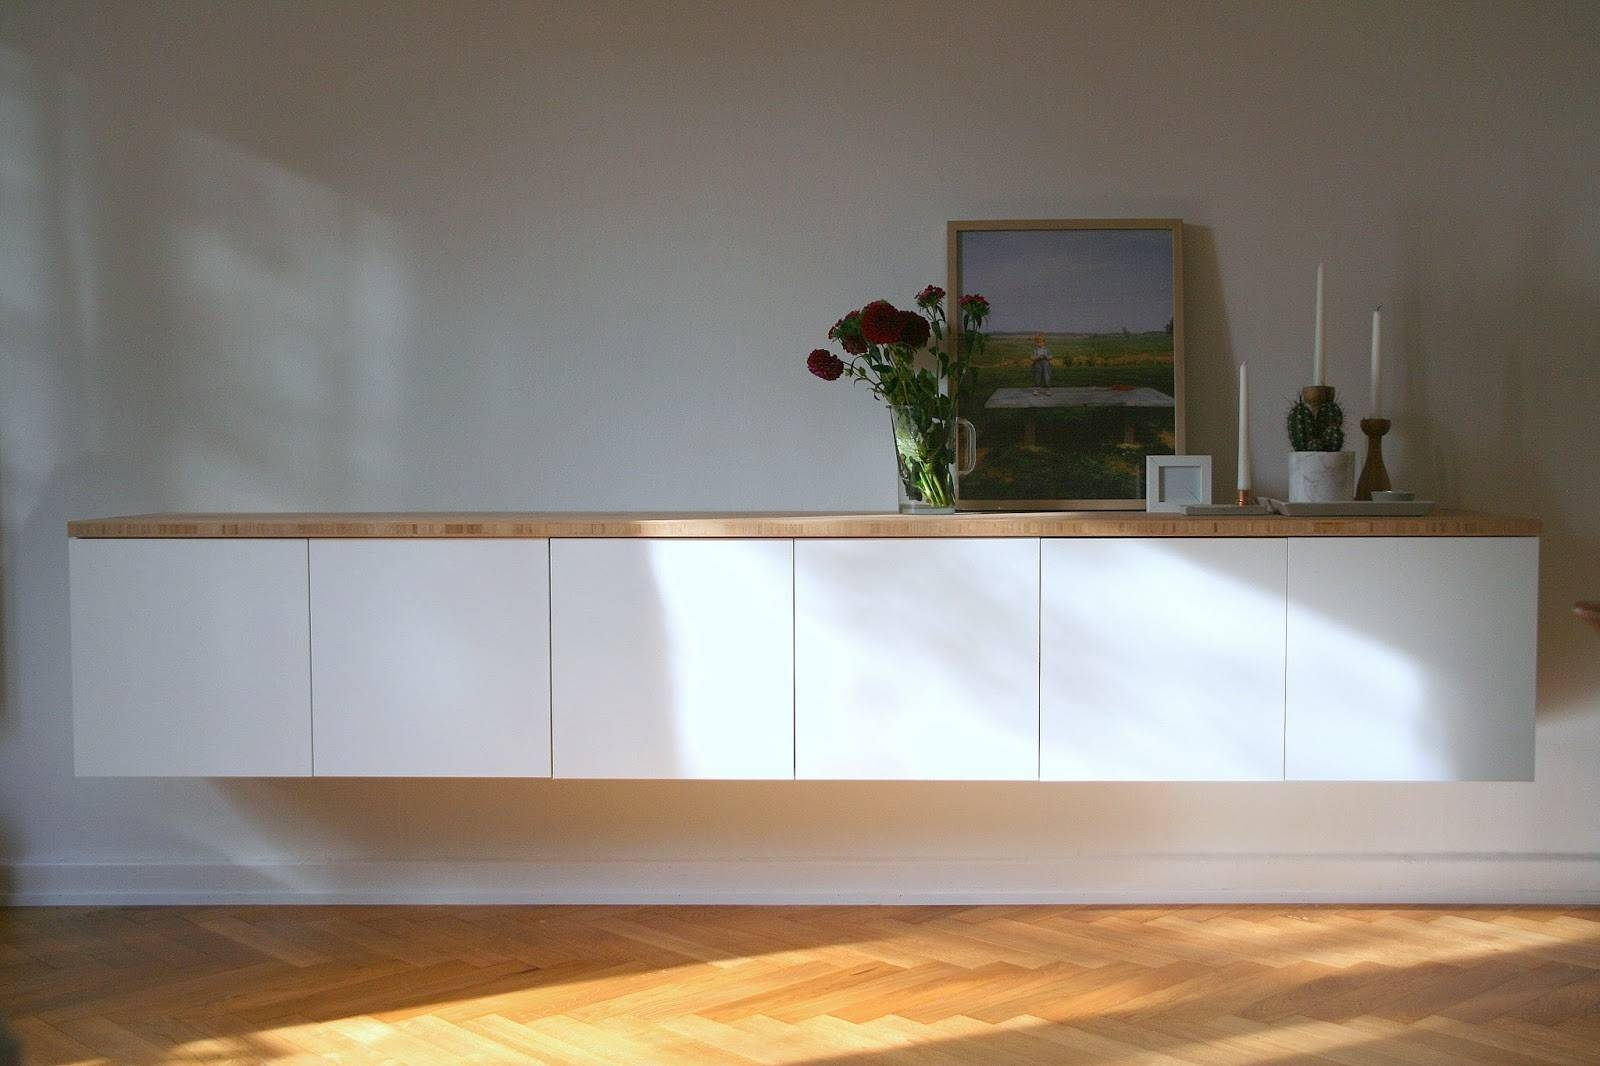 Inspiration about Unglaublich Ikea Hacks Wohnwand Instafav 20 Best Ikea On Instagram Pertaining To Recent Ikea Besta Sideboards (#11 of 15)